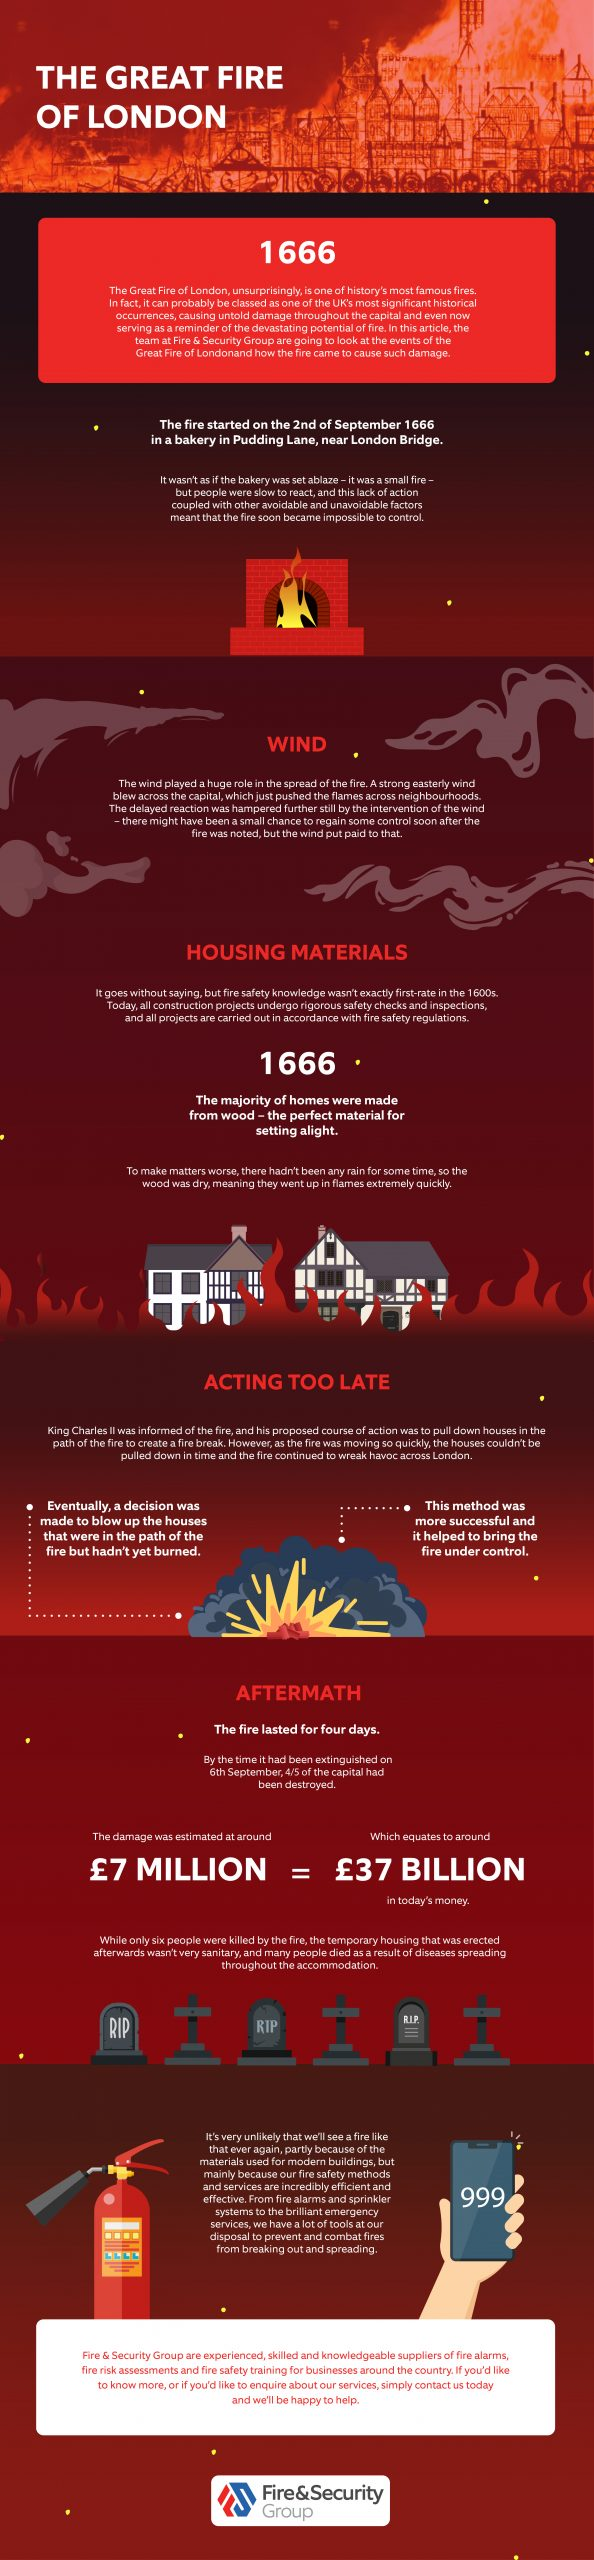 The Great Fire of London Infographic